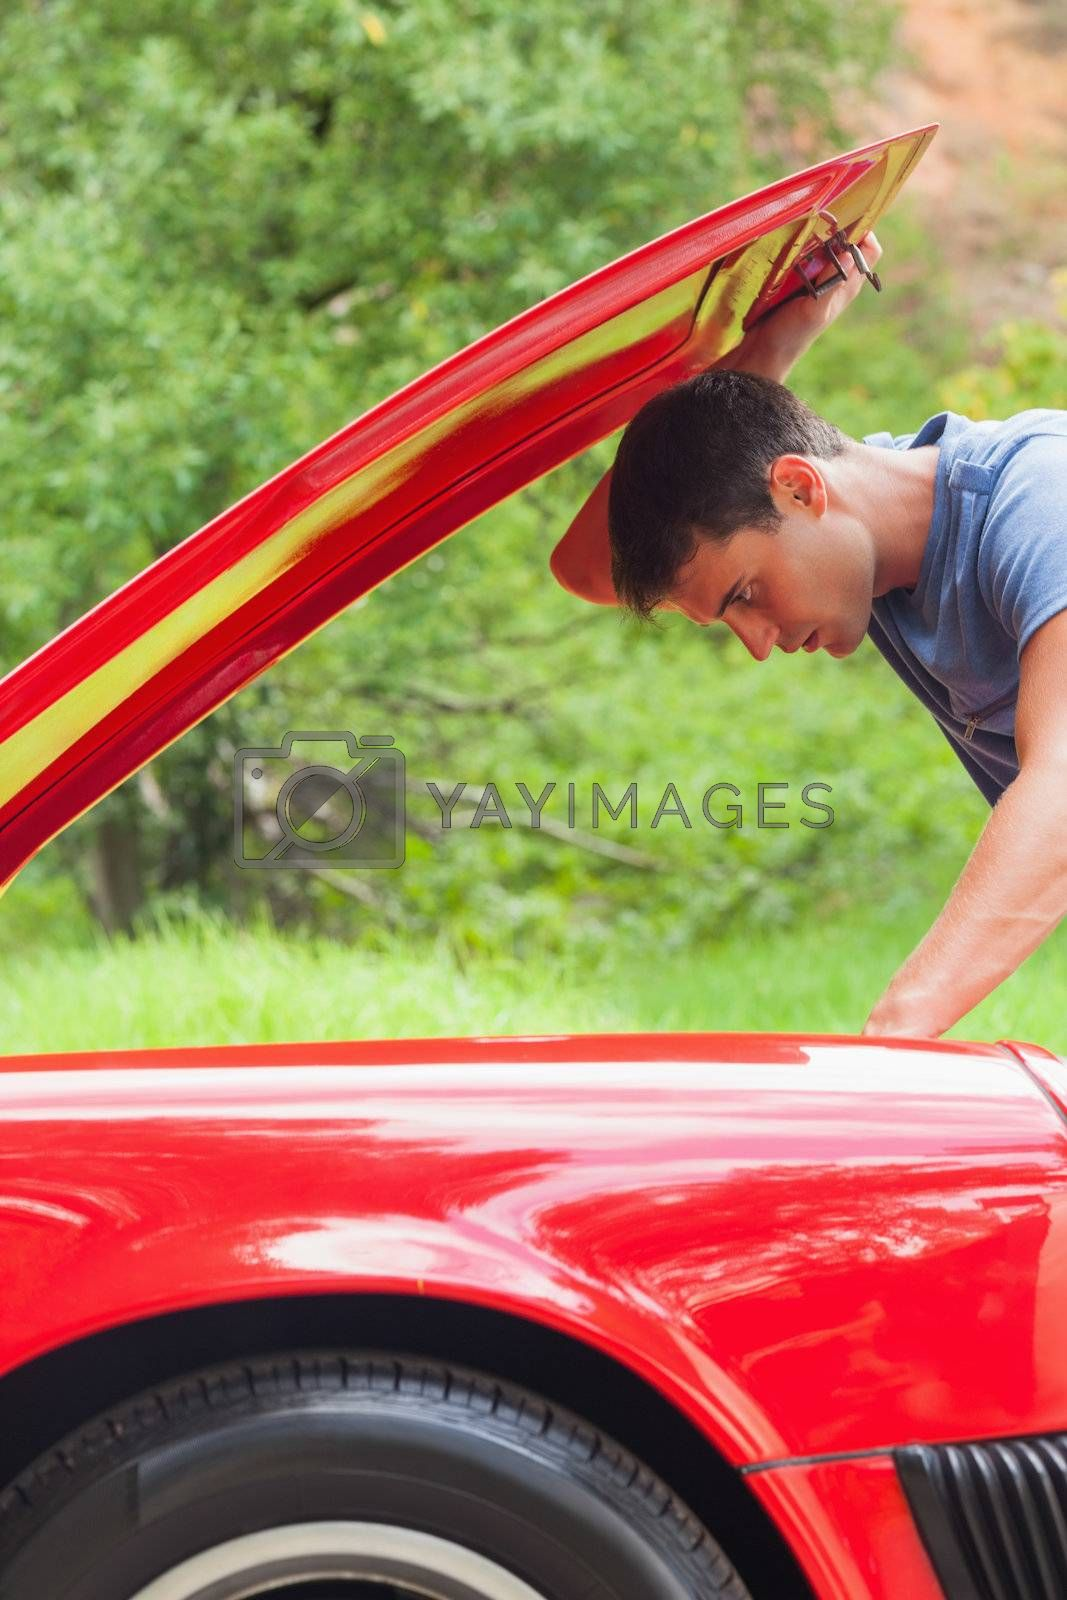 Handsome man checking his car engine by Wavebreakmedia